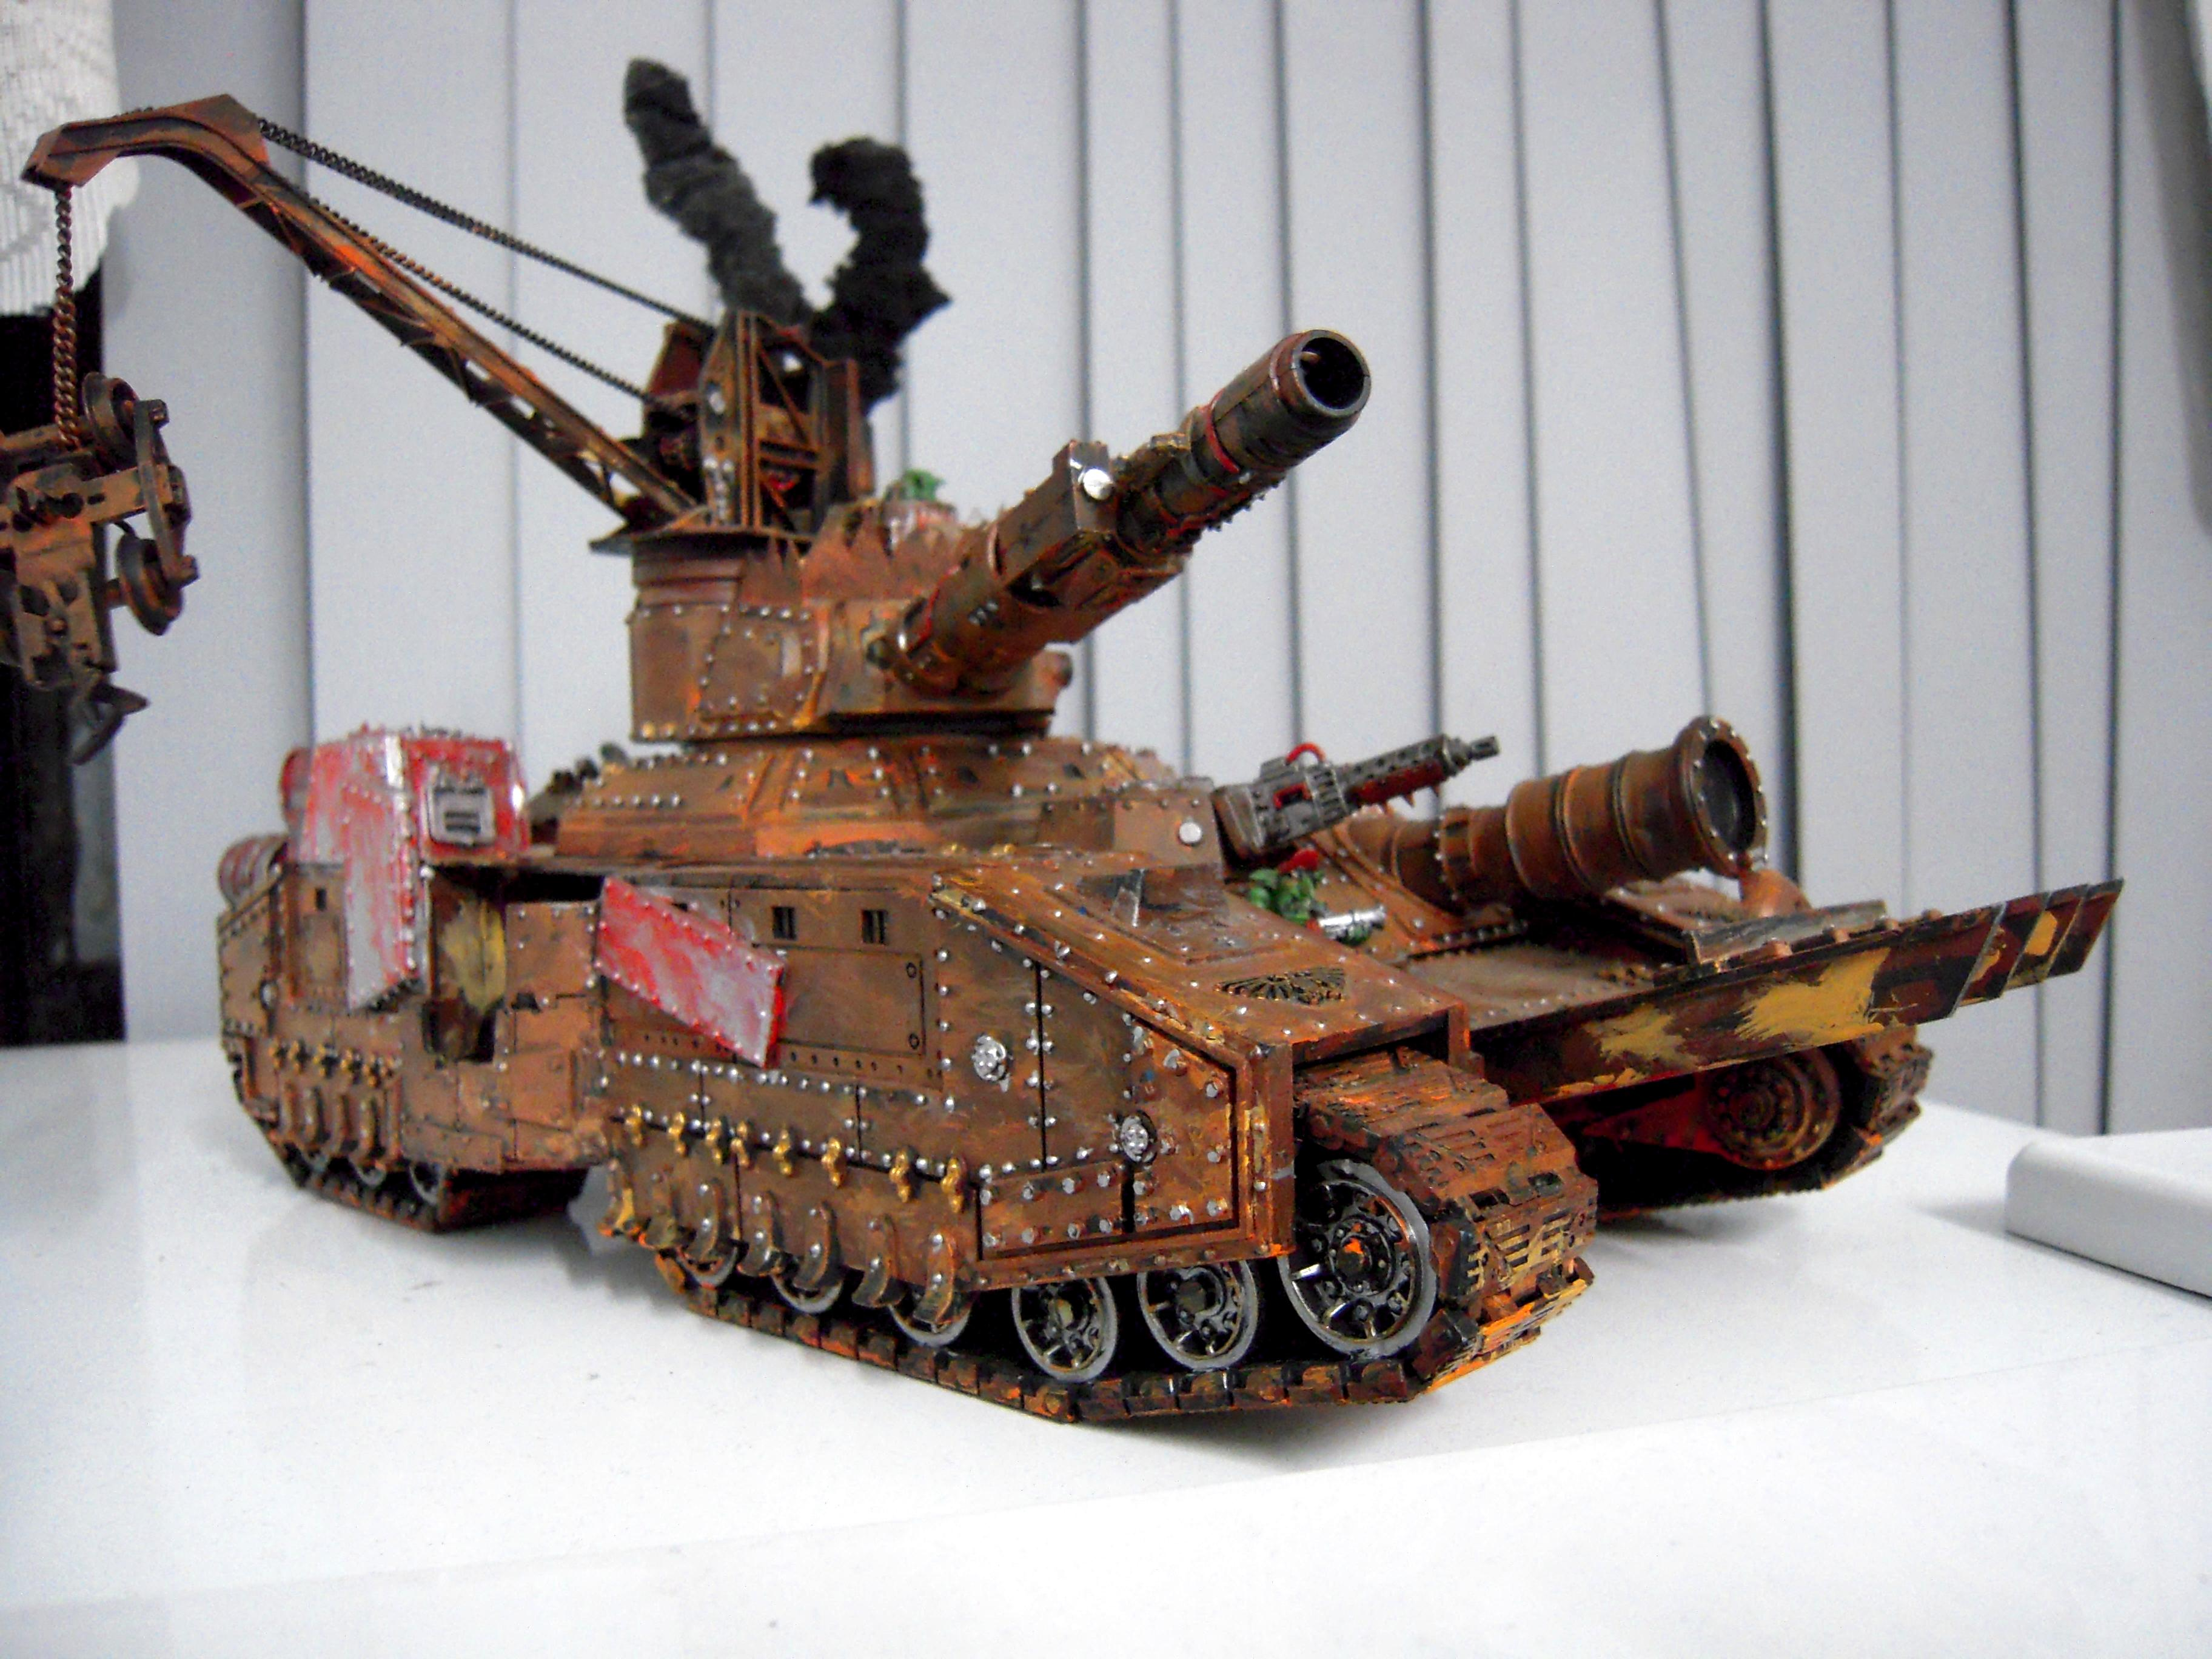 Apocalypse, Baneblade, Conversion, Engine, Freaks, Freakz, Freekz, Heavy, Looted, Massive, Orks, Ramming Spikes, Reinforced Ram, Rokkit, Skullhammer, Speed, Super, Super-heavy, Tank, Turbo, Warhammer 40,000, Wrecking Ball